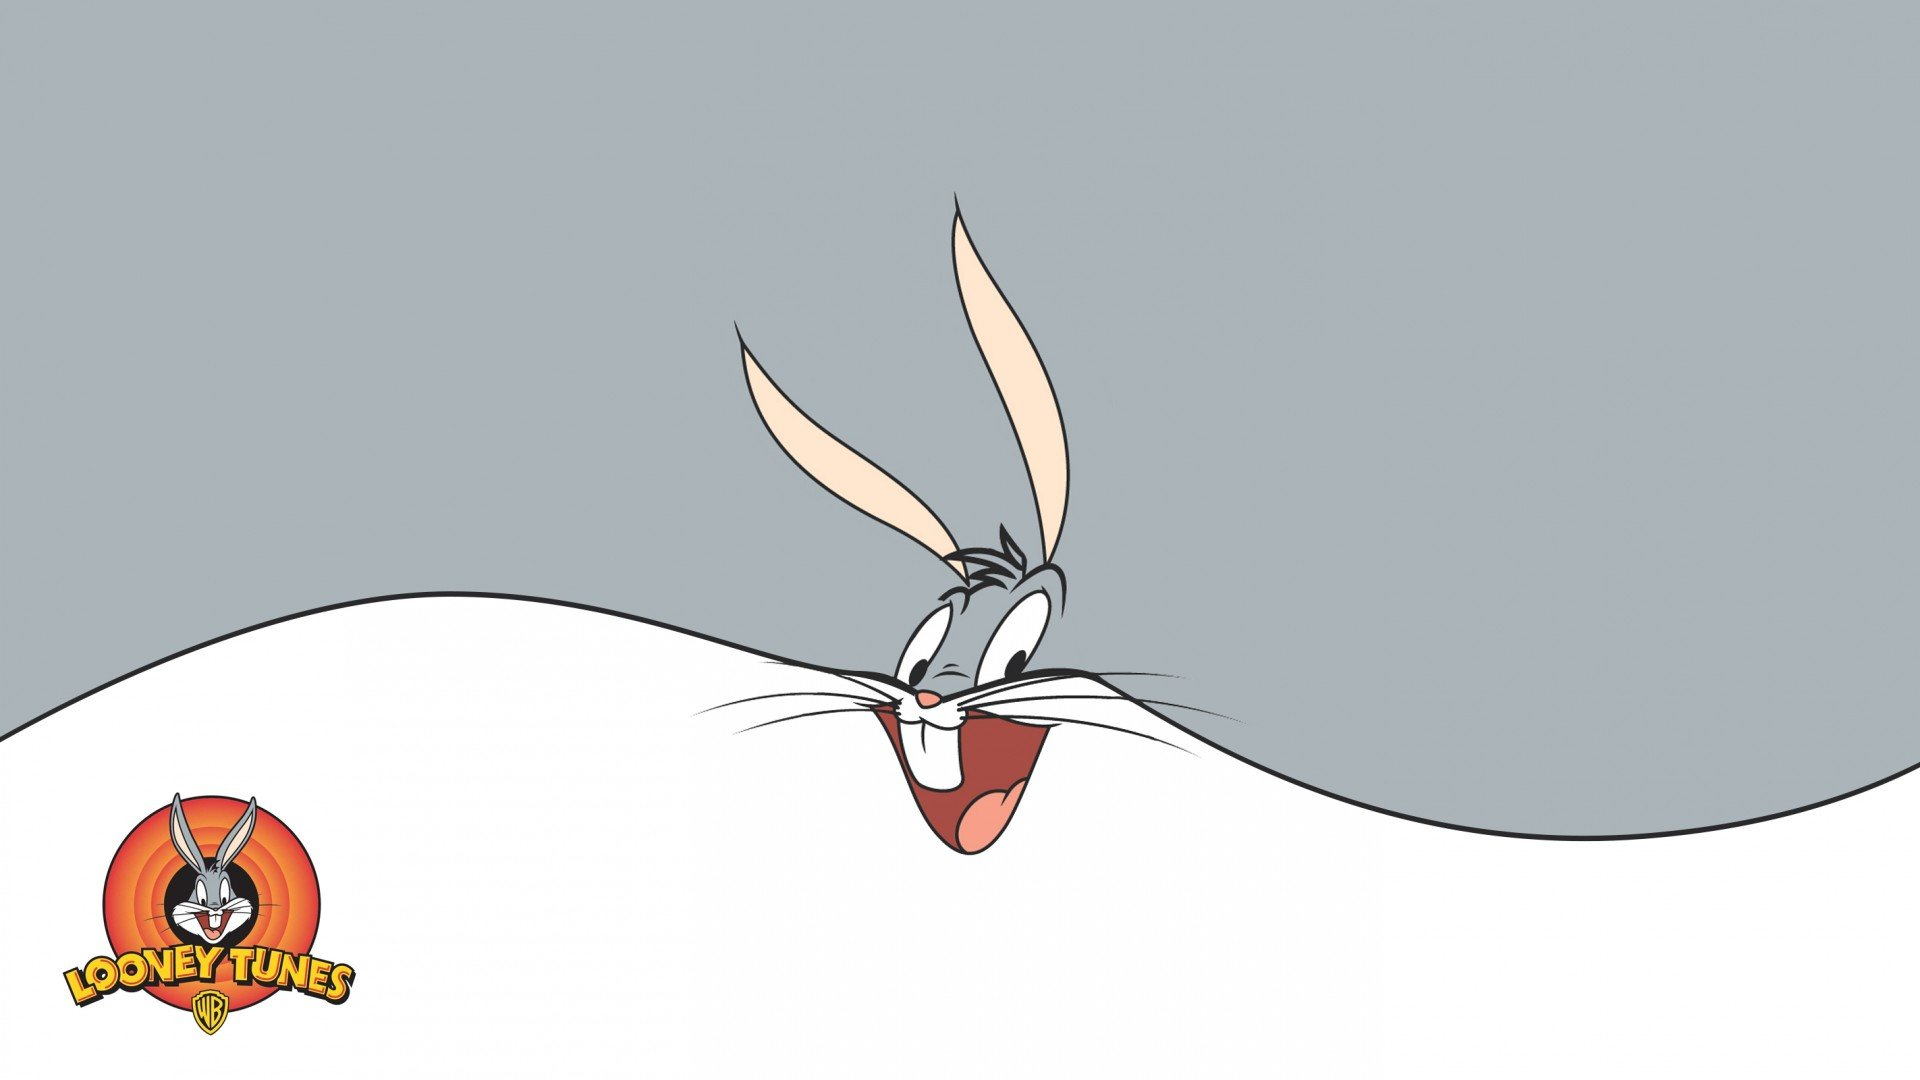 Bugs Bunny Wallpaper   Wallpaper High Definition High Quality 1920x1080